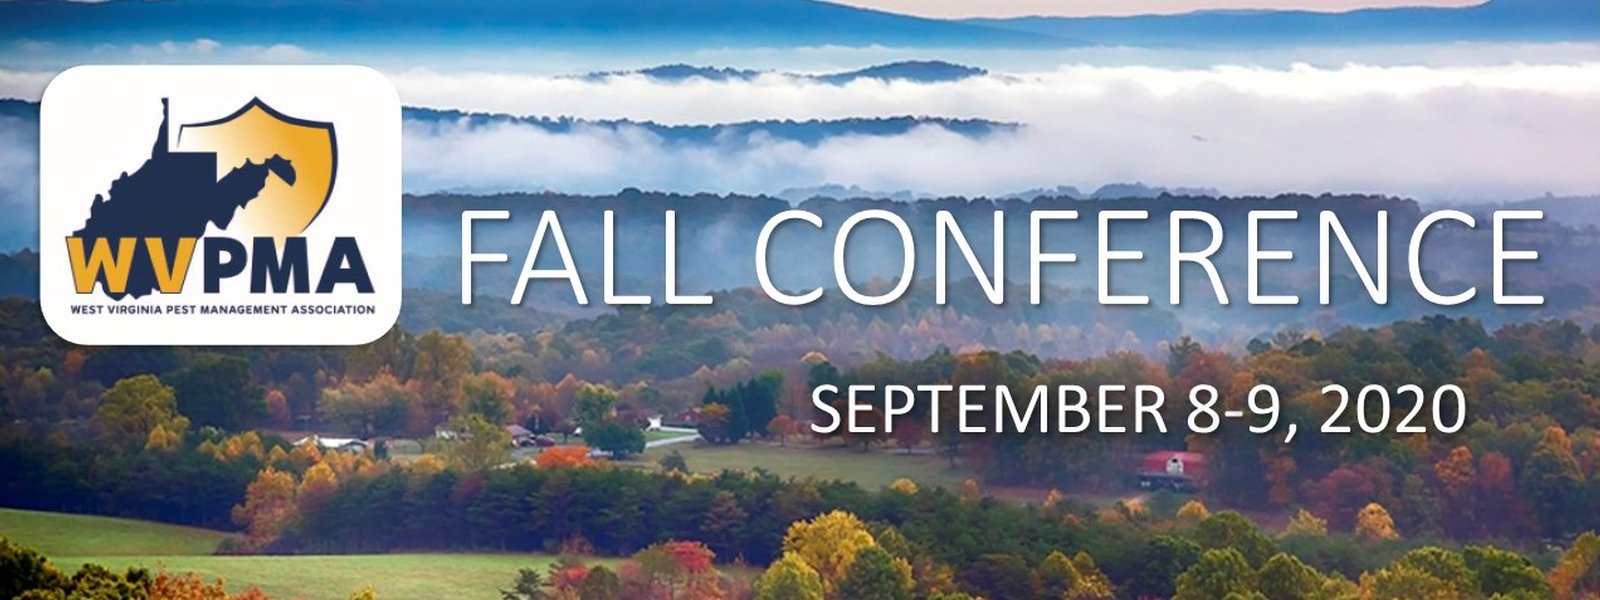 2020 Fall Conference